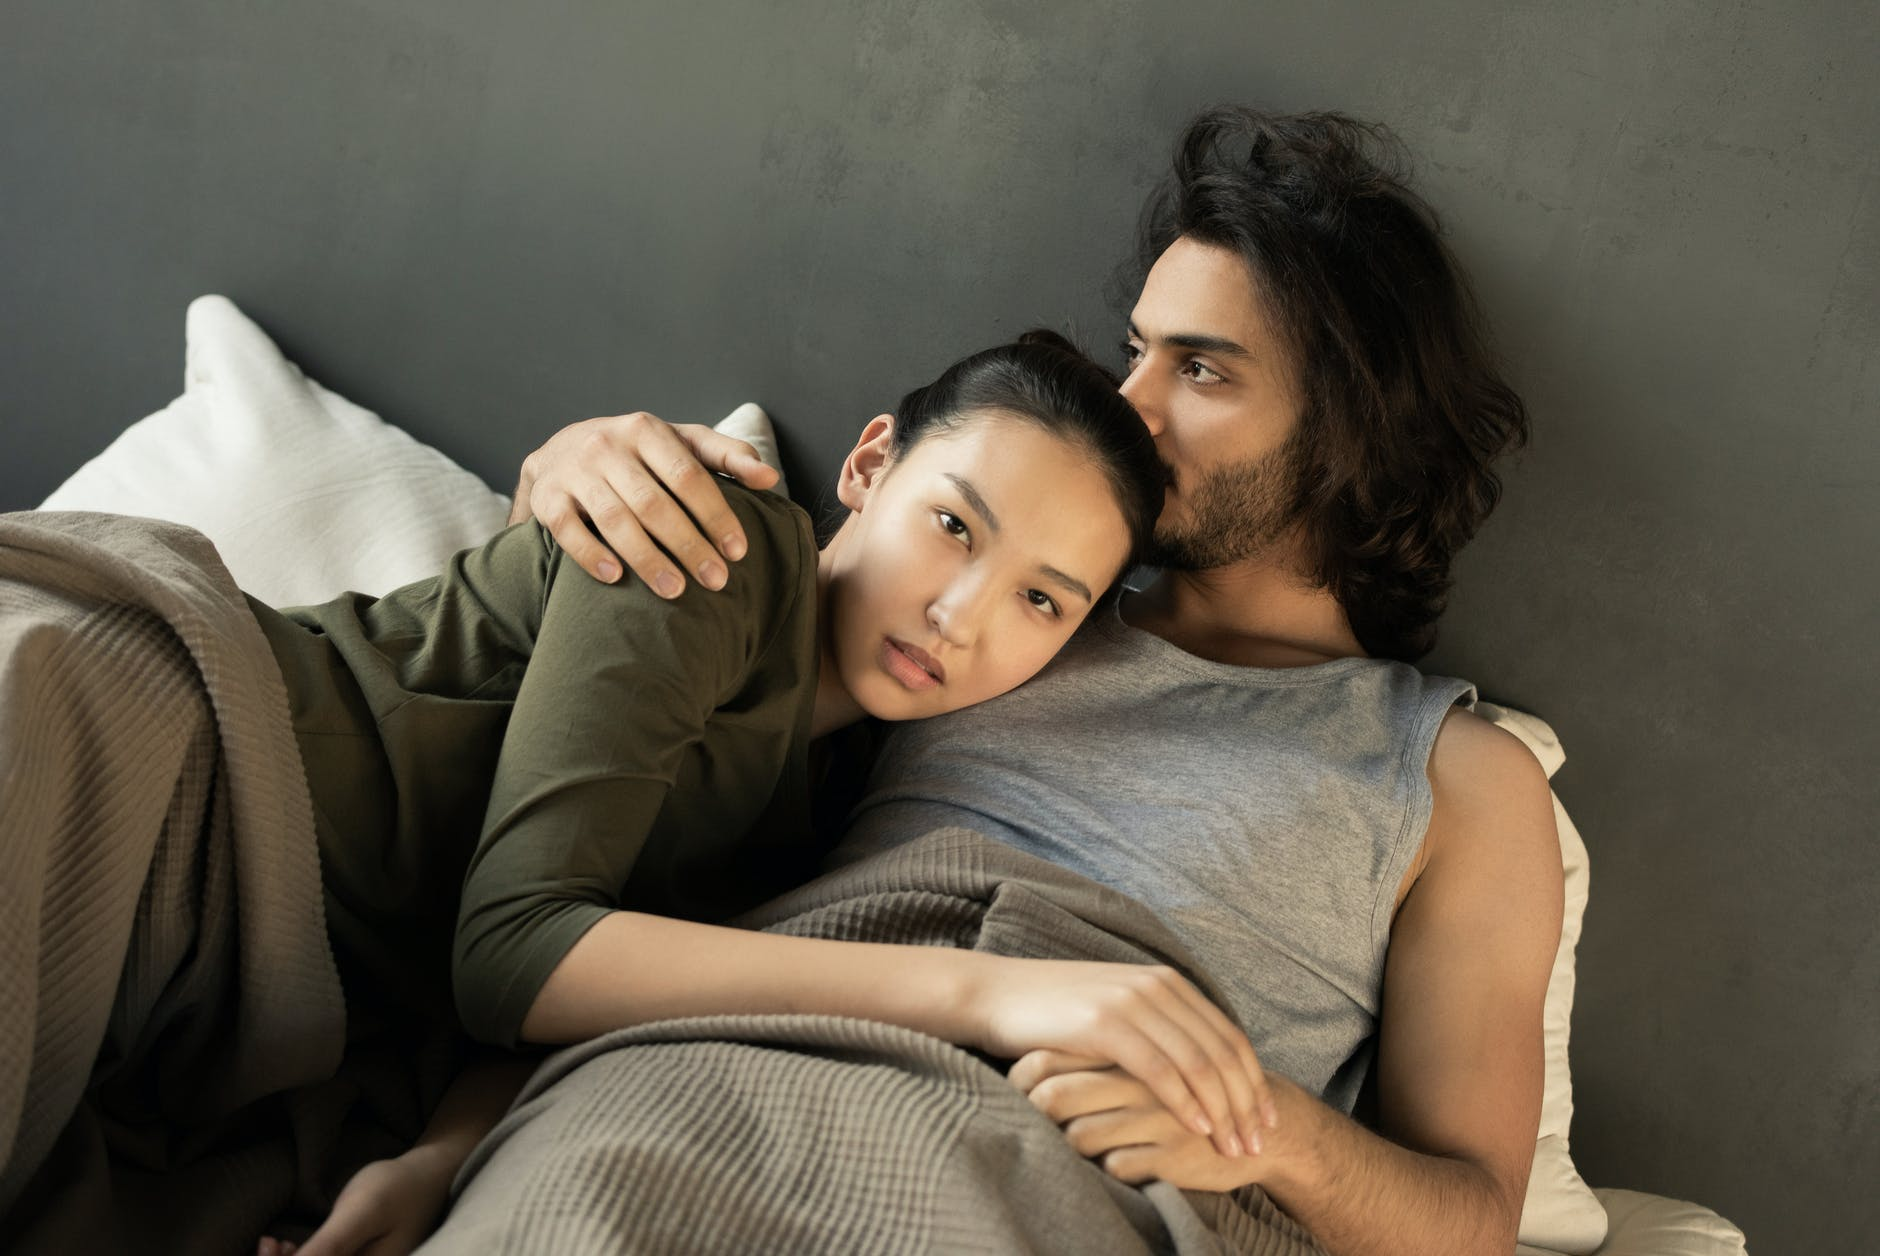 woman in green top lying on a man s chest in bed